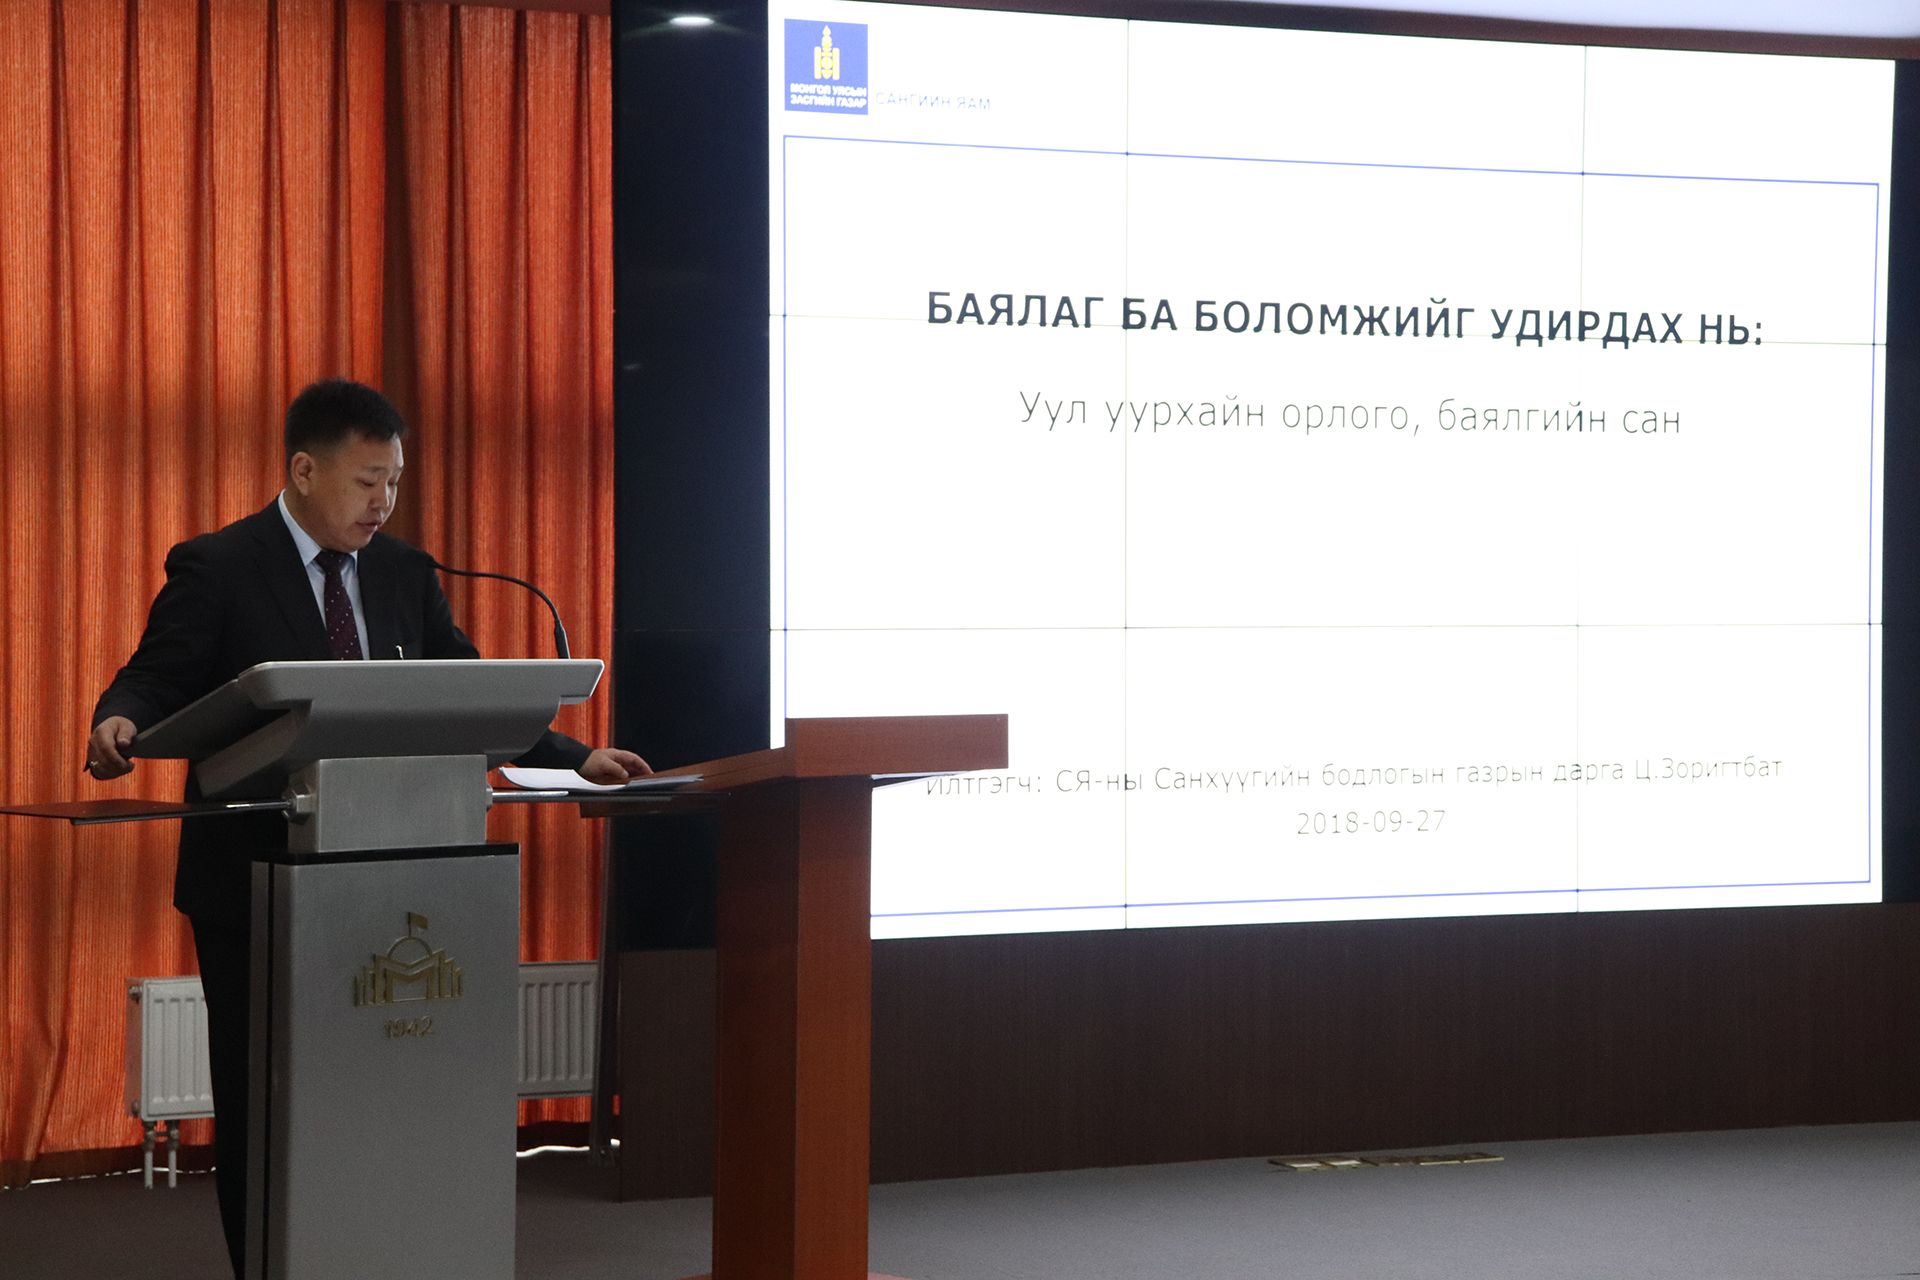 Zorigtbat Tseveenjav,  Director of General Financial Policy Department, Ministry of Finance